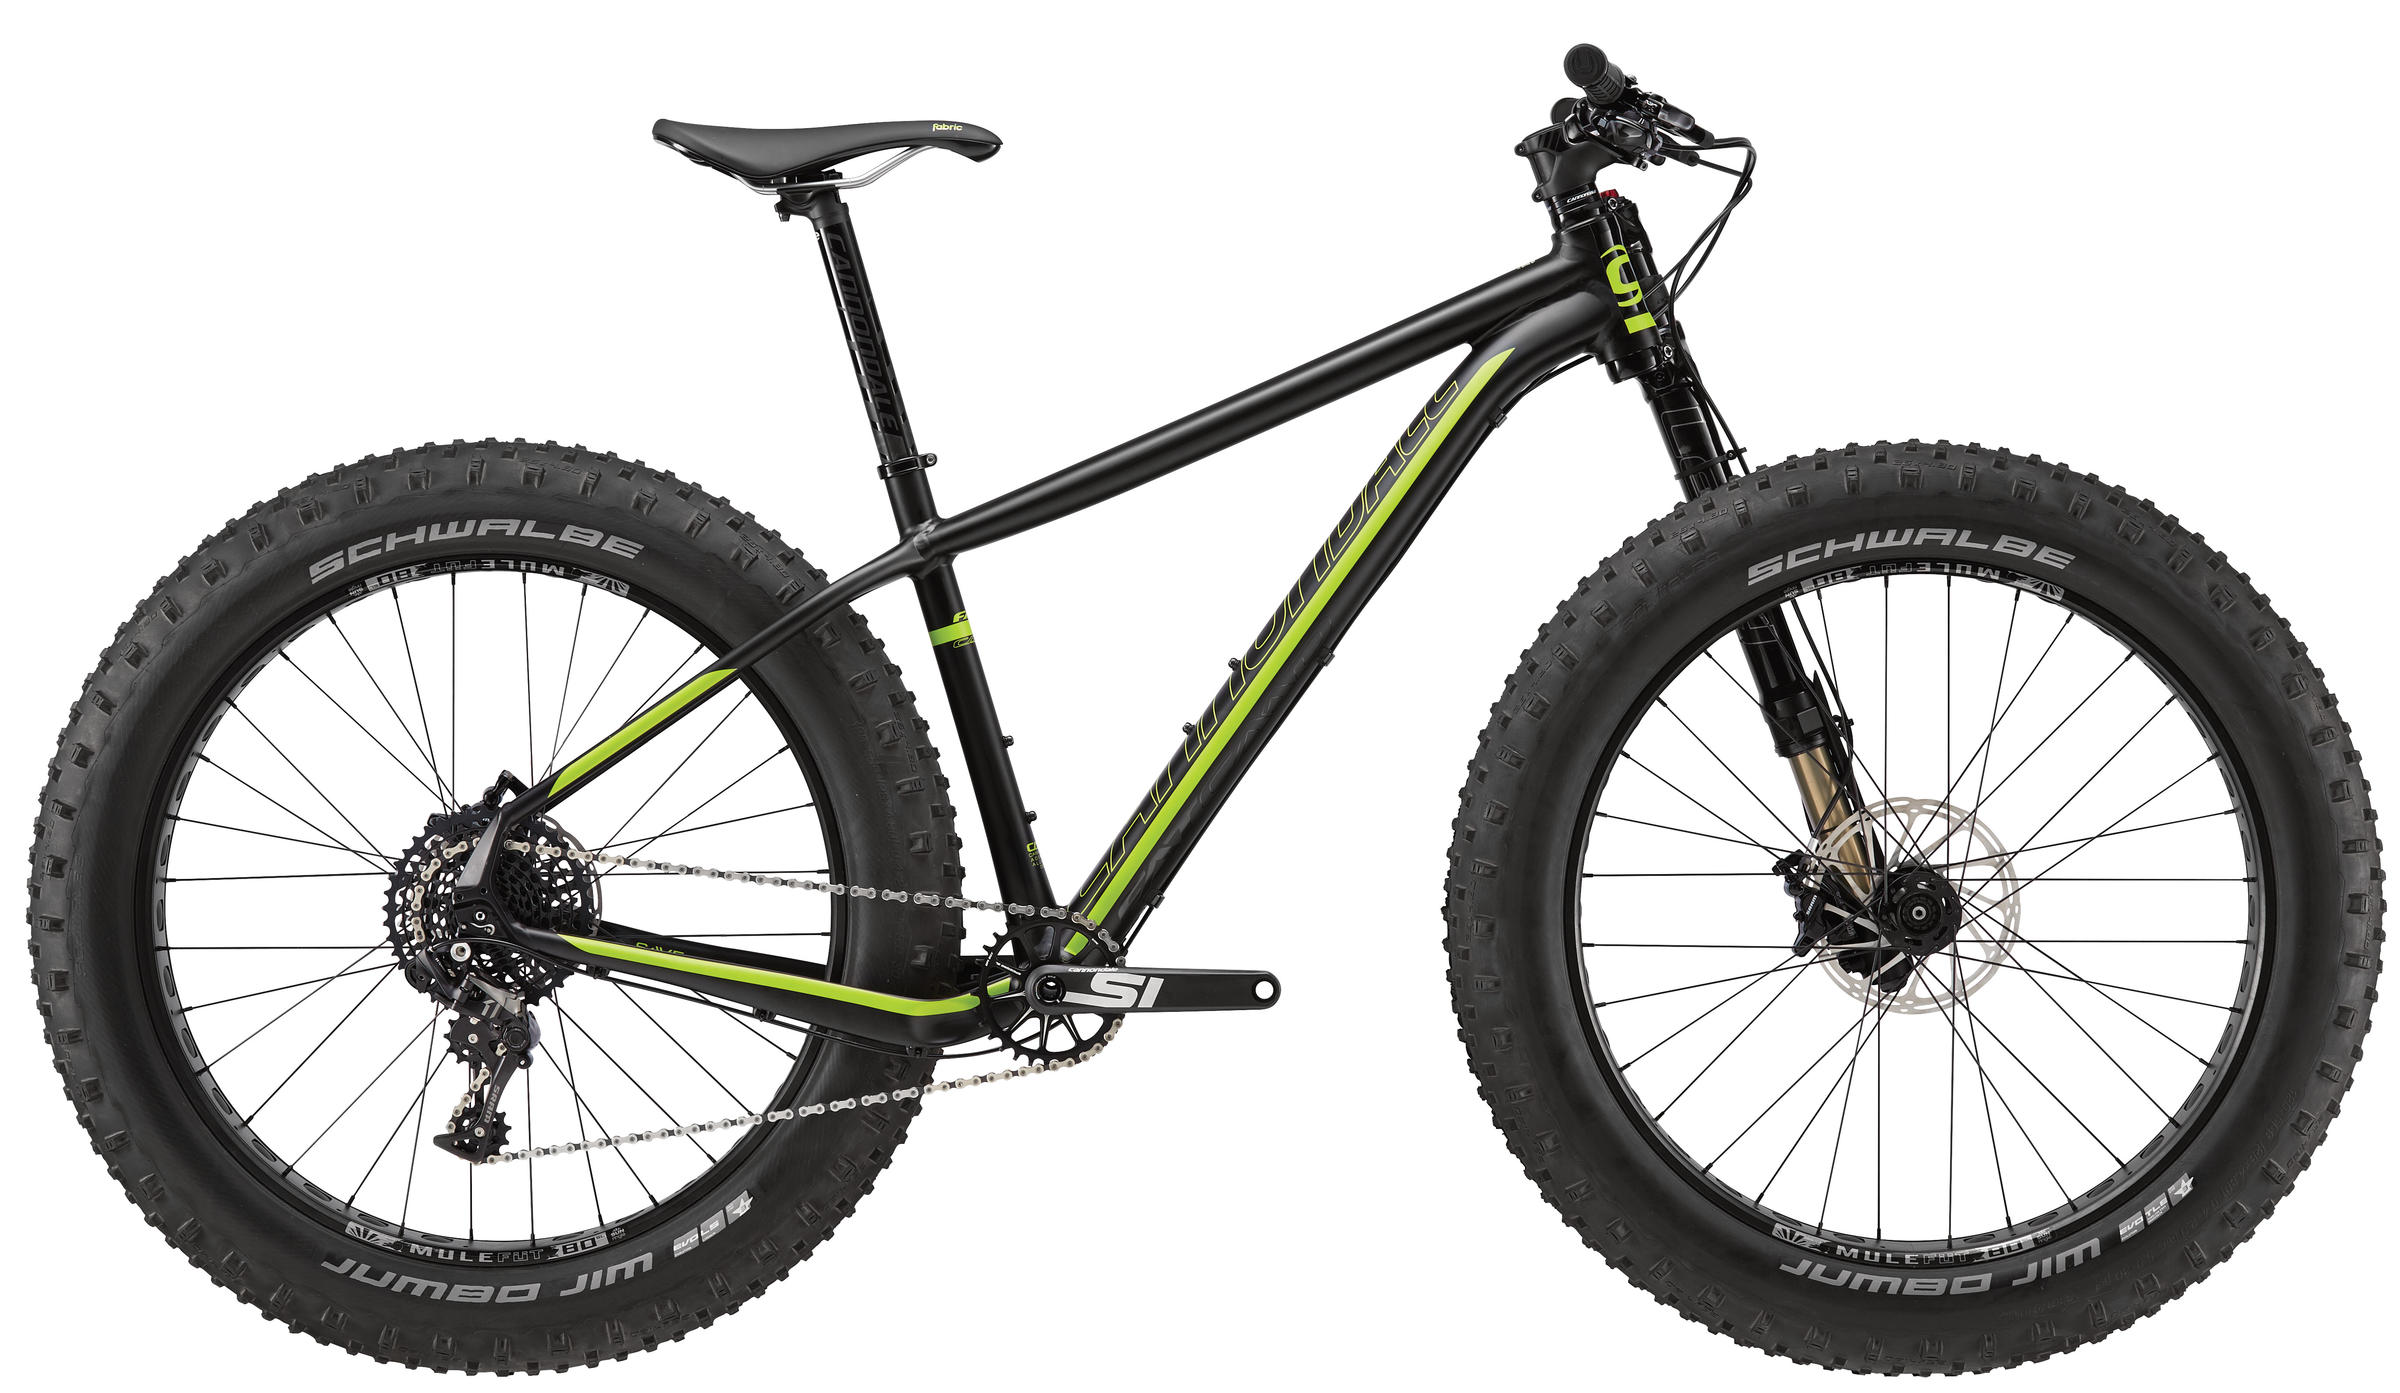 a50b2e739a9 Cannondale Fat CAAD 1 - Grand Rapids Bicycle Co. - Grand Rapids ...